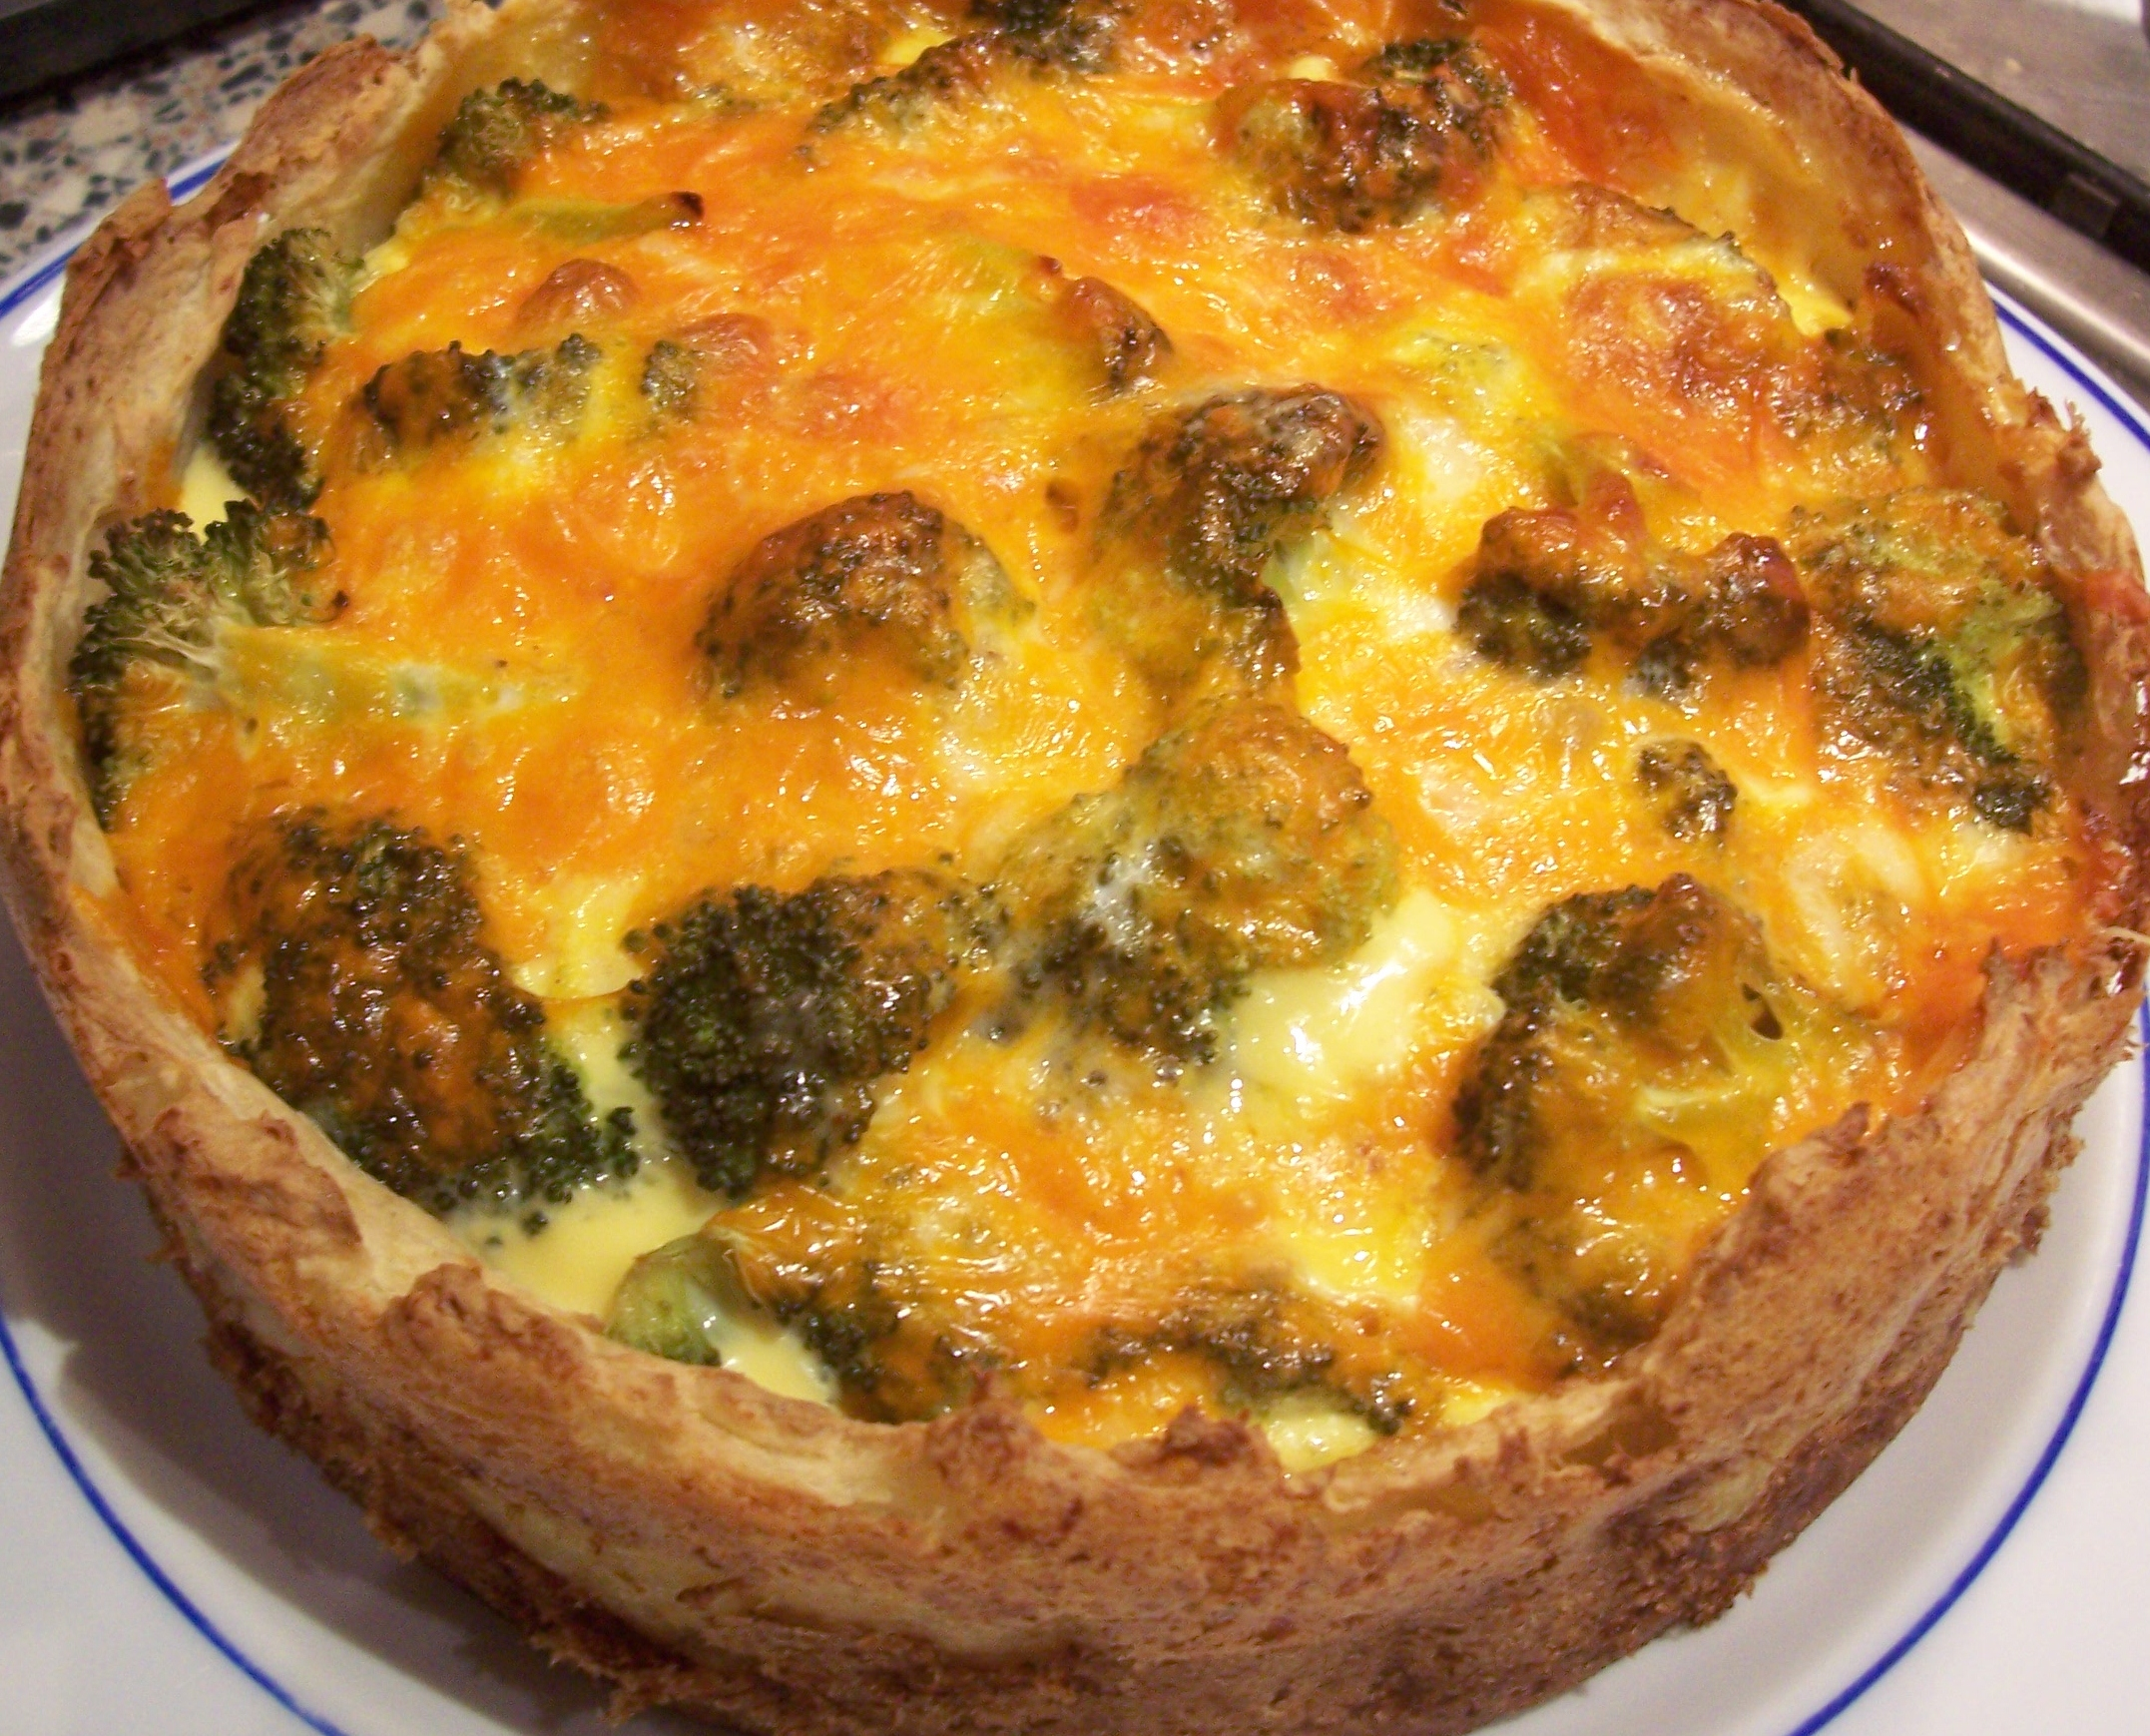 Broccoli and Cheese Quiche with Mashed Potato Crust